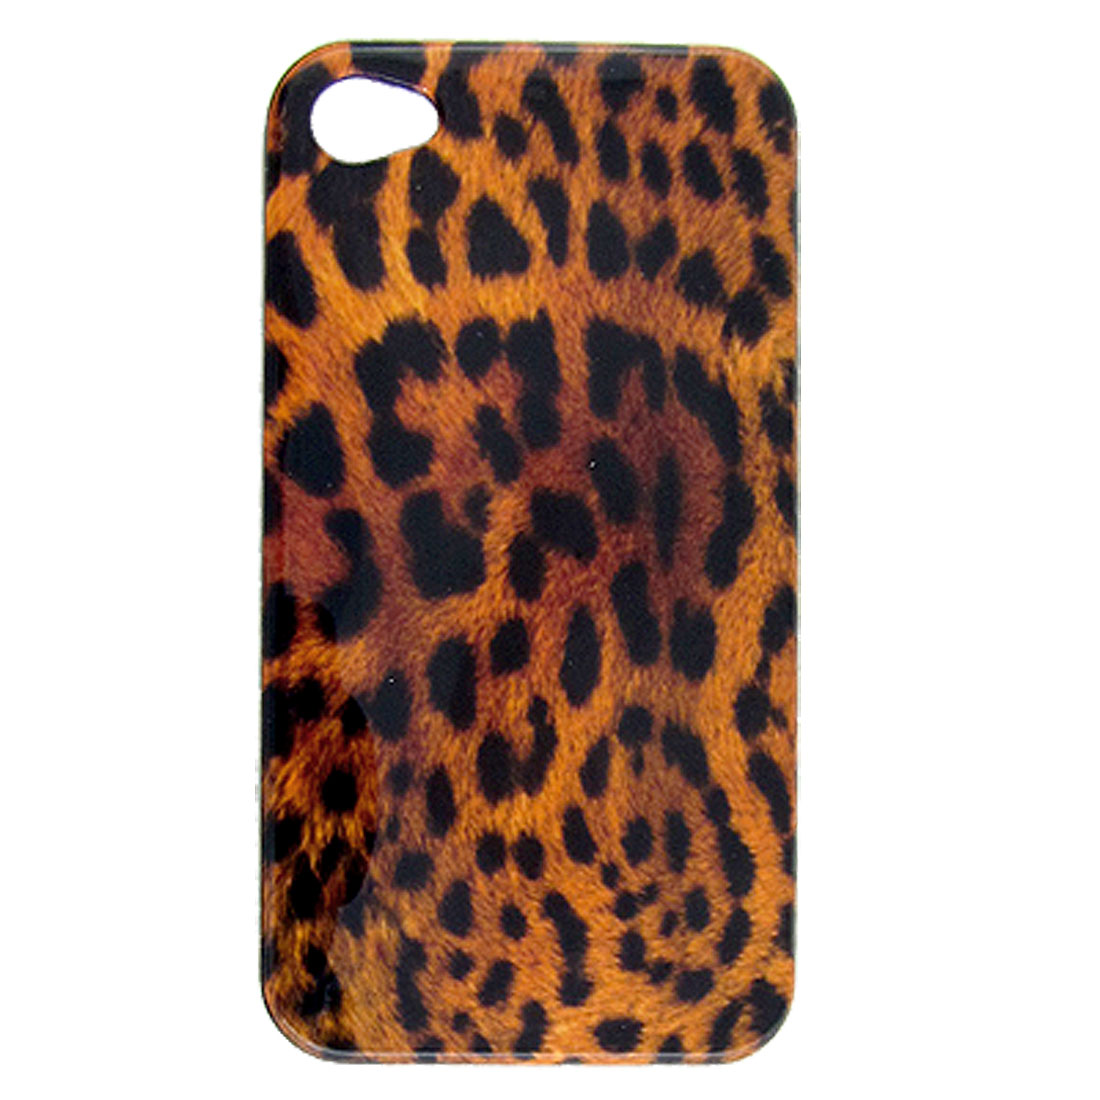 Leopard Print Hard Plastic Back Case Shell for iPhone 4 4G